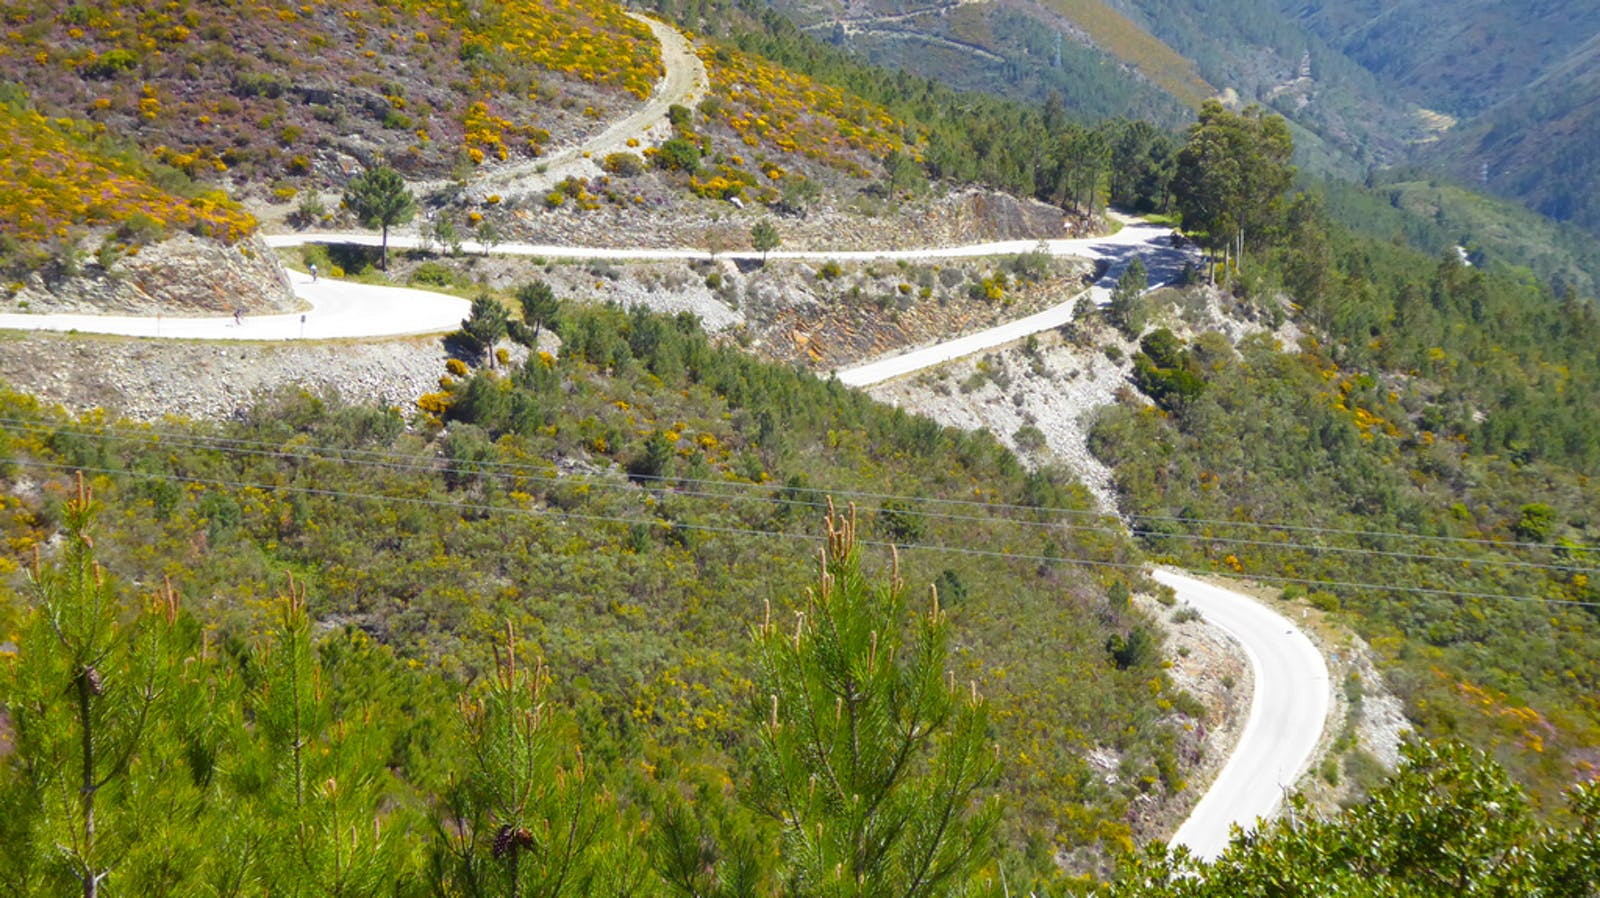 Private cycling trip opportunity: One of the Trans-Portugal climbs